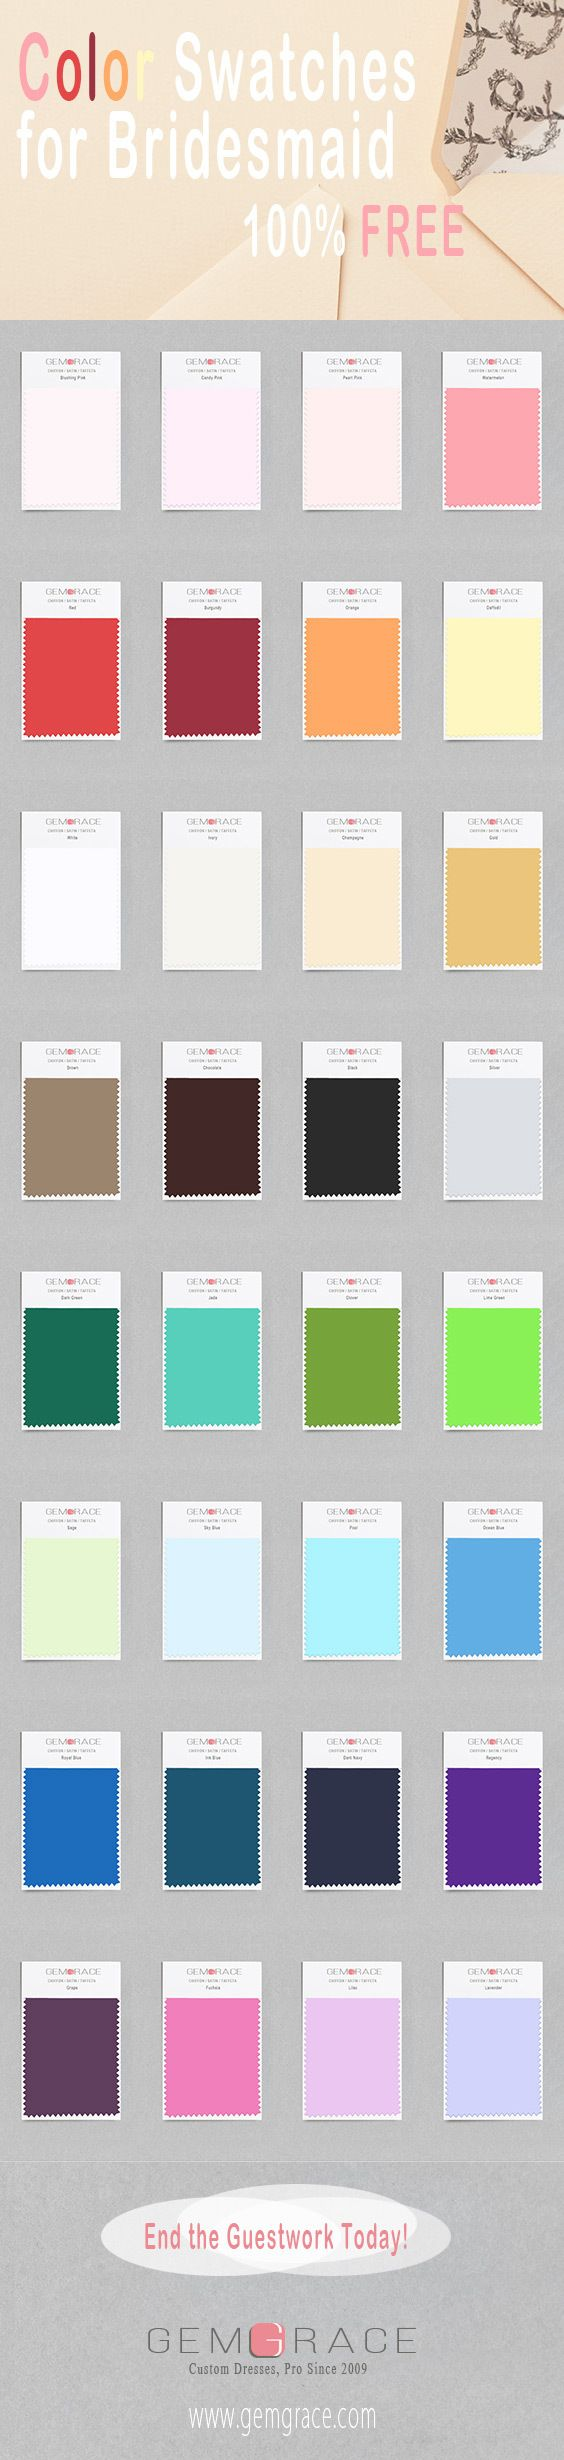 44 best free color swatches for dresses images on pinterest end the guesswork we recommend ordering fabric swatches to make your color decision easier ombrellifo Image collections